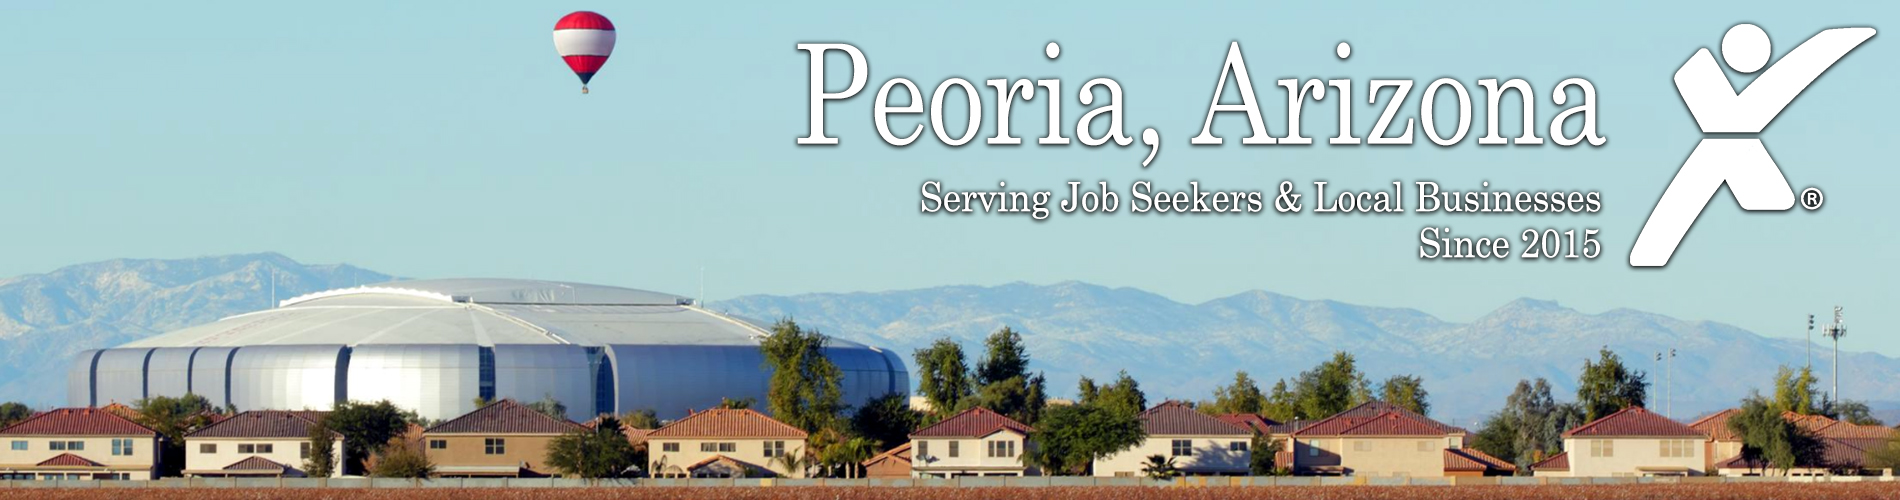 Express Employment Staffing Firms in Peoria, Arizona